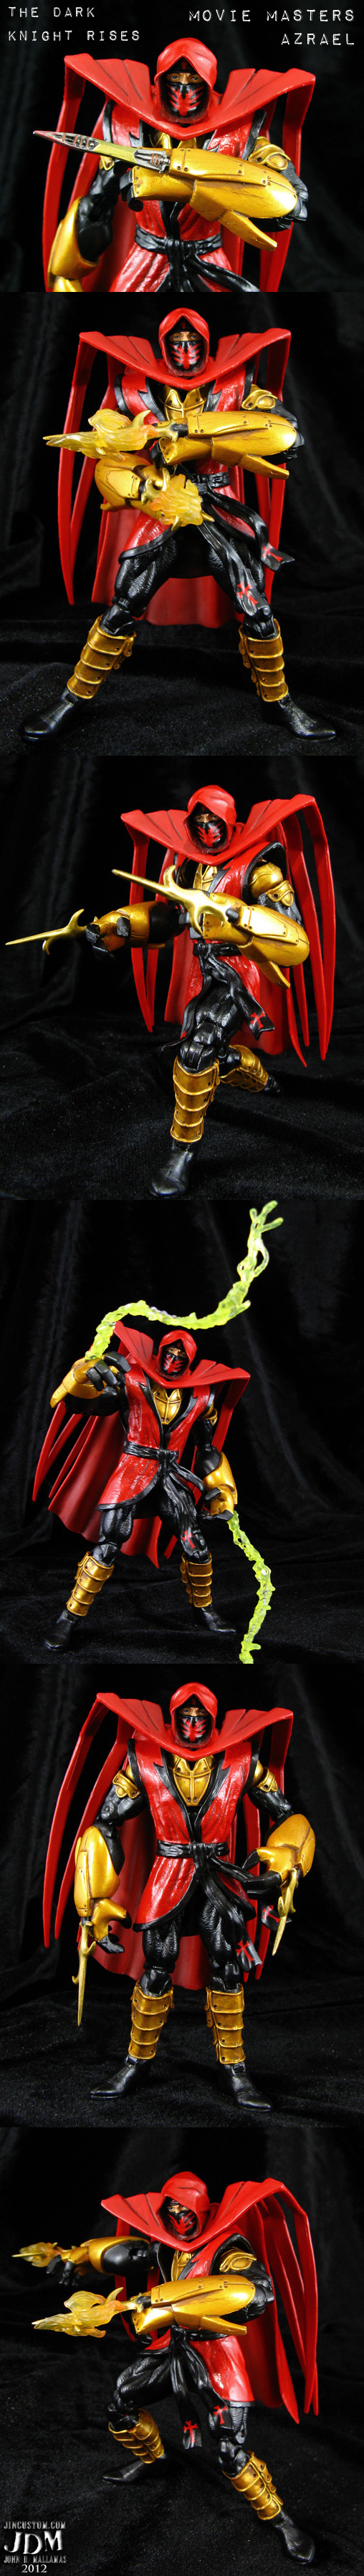 Custom Azrael batman figure